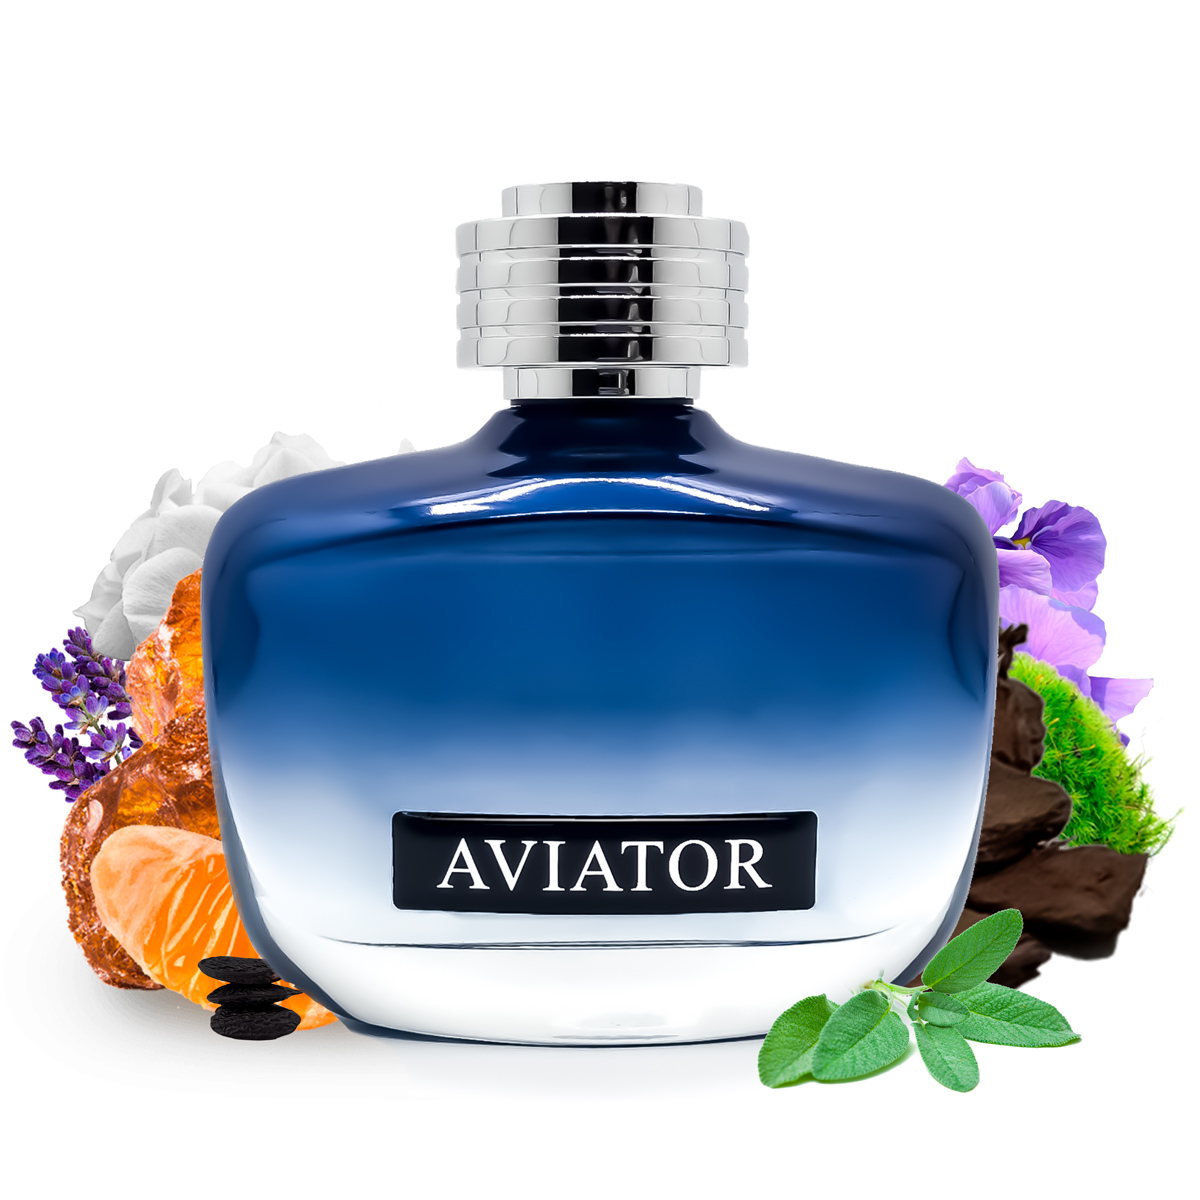 Perfume Aviator Code Masculino Edt 100ml Paris Bleu